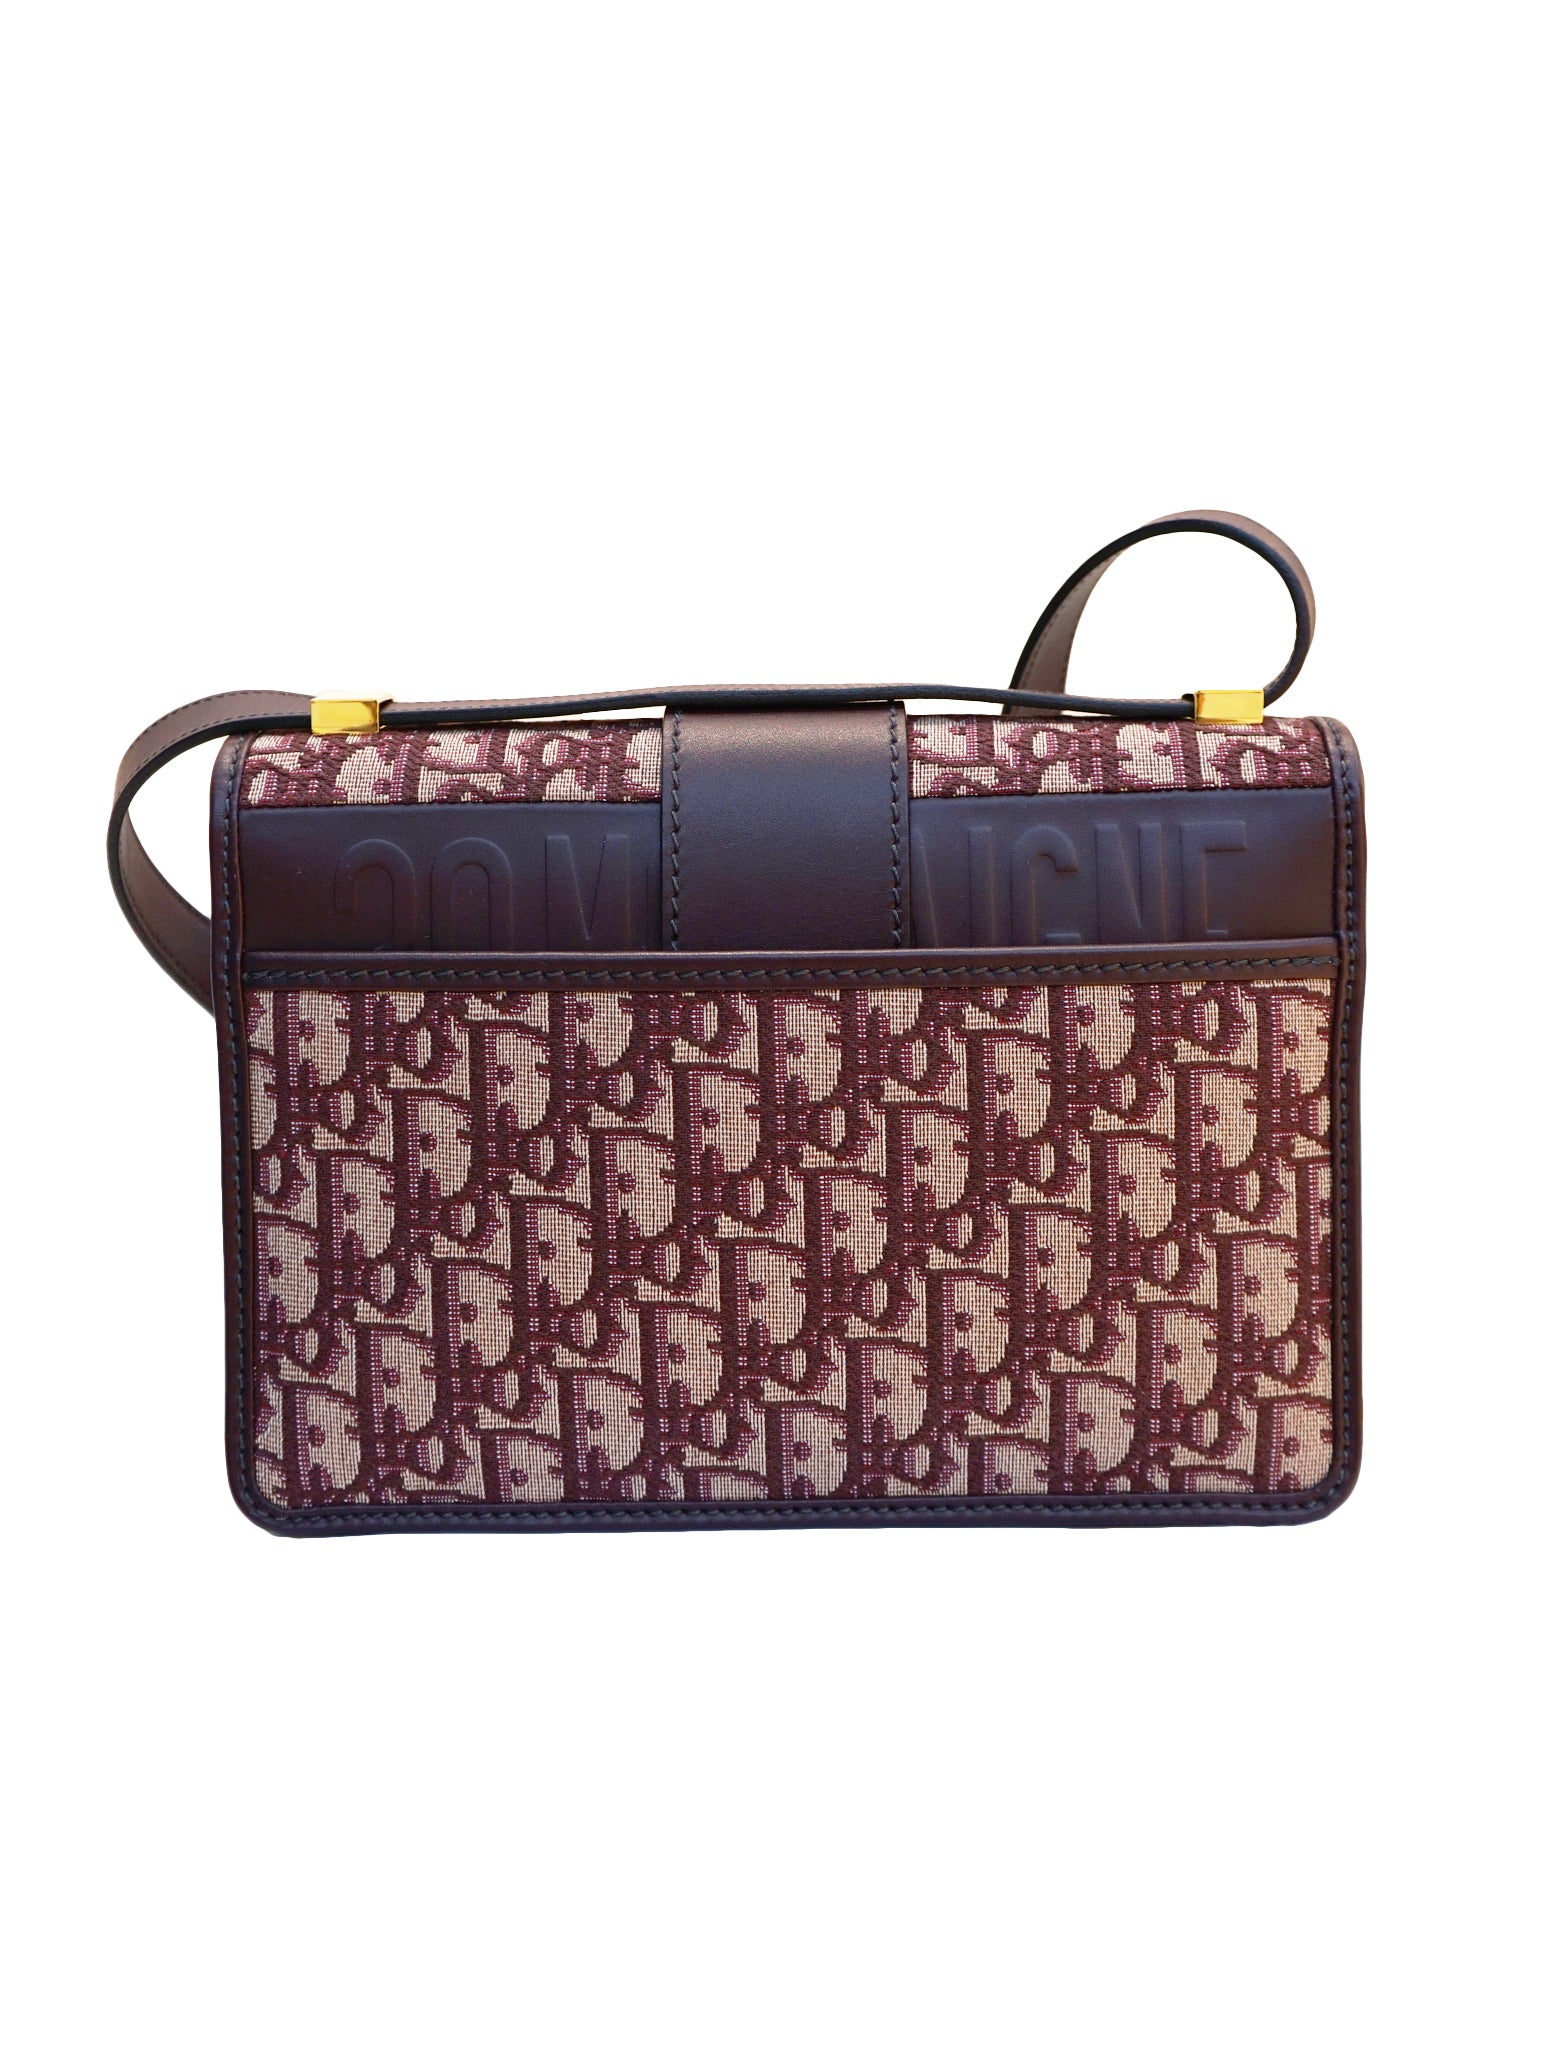 OBLIQUE JACQUARD 30 MONTAIGNE BAG